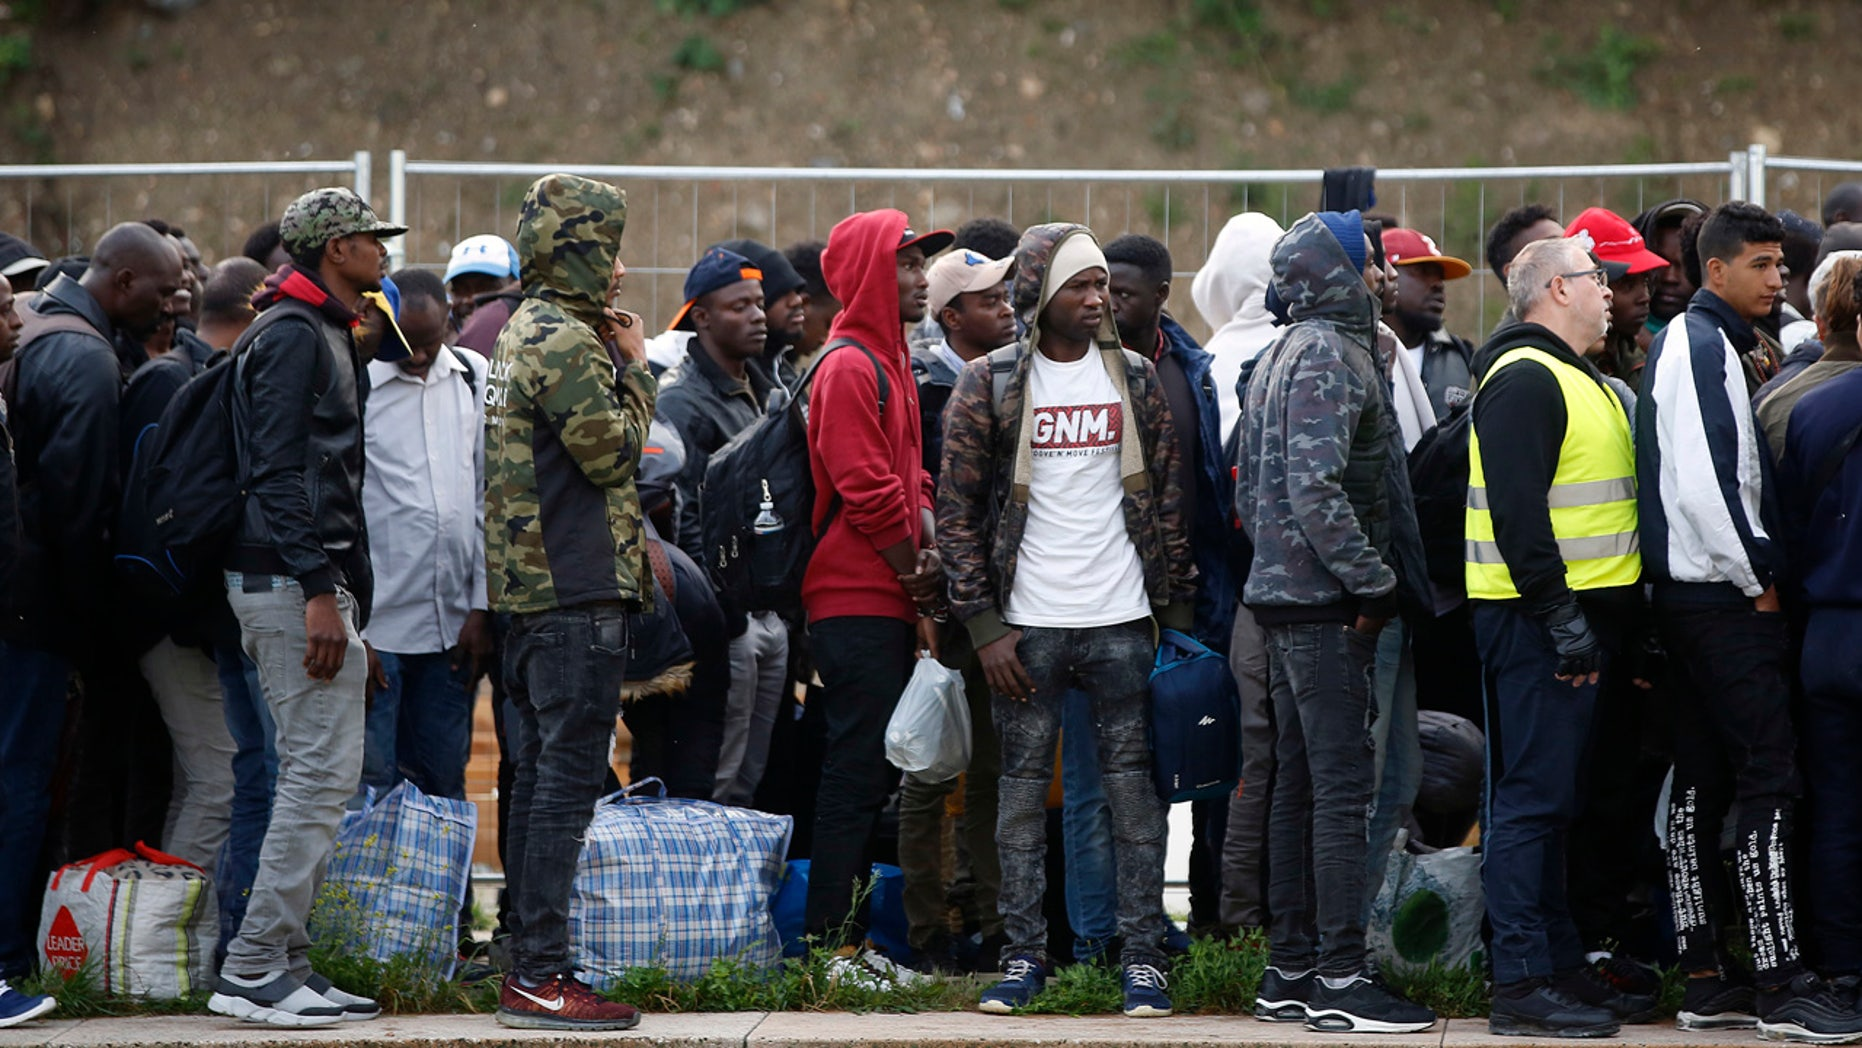 May 30: Migrants line up in a makeshift camp during its evacuation, in Paris. Authorities moved in on the so-called Millennaire tent camp on the city's edge alongside a canal used by joggers and cyclists.